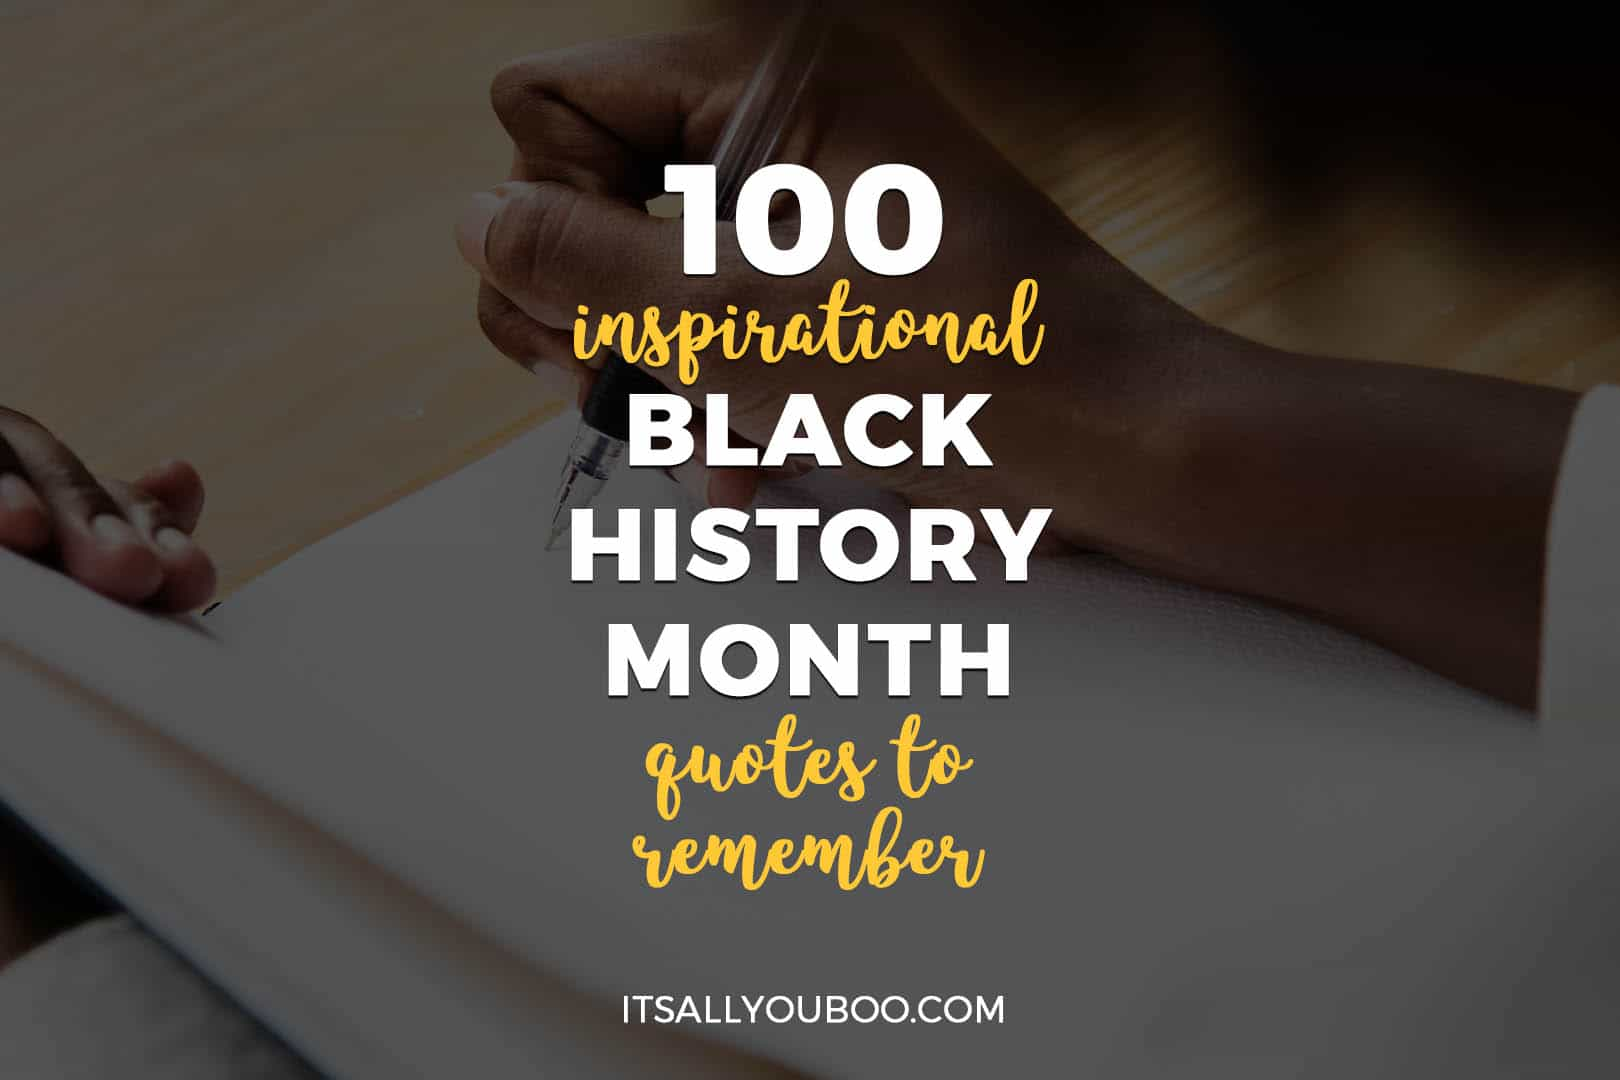 100 Inspirational Black History Month Quotes To Remember